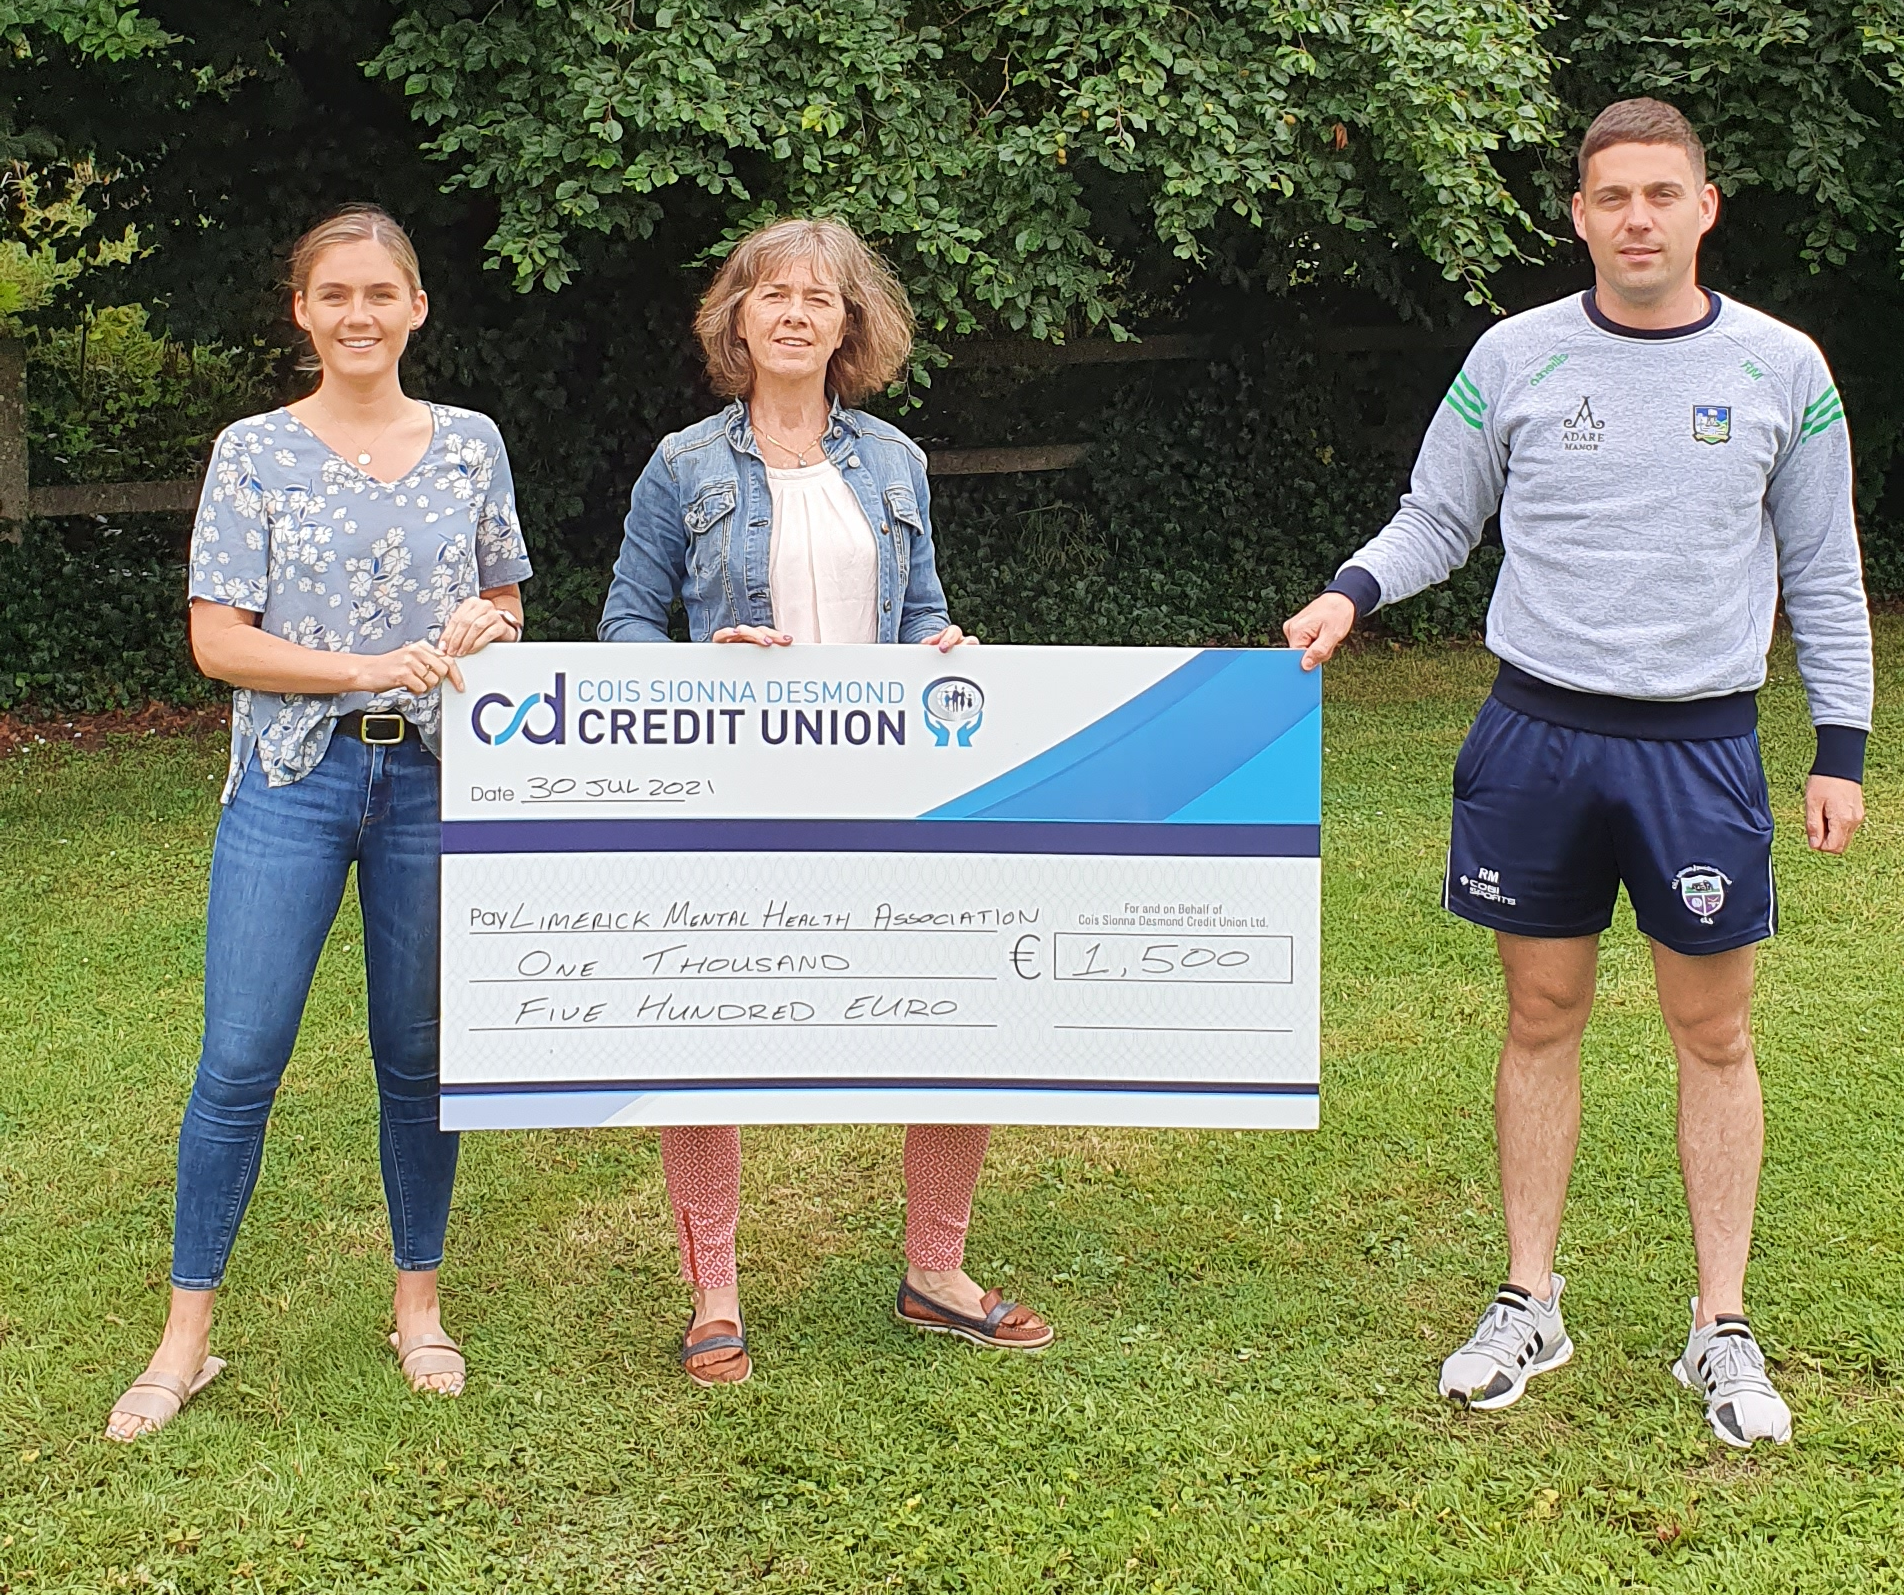 Curraghchase 10k presenting LMHA with a cheque for €1500 raised from the event